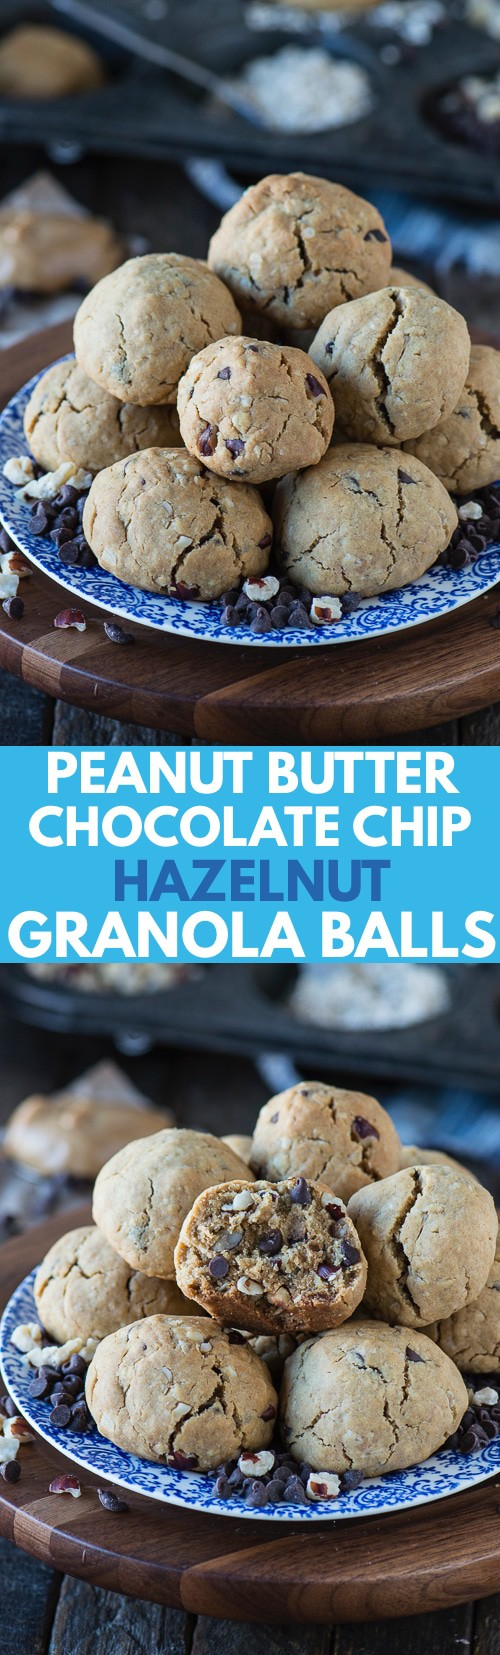 Easy baked granola ball recipe loaded with peanut butter, oatmeal and chocolate chips! 9 ingredients and less than 20 minutes to bake!